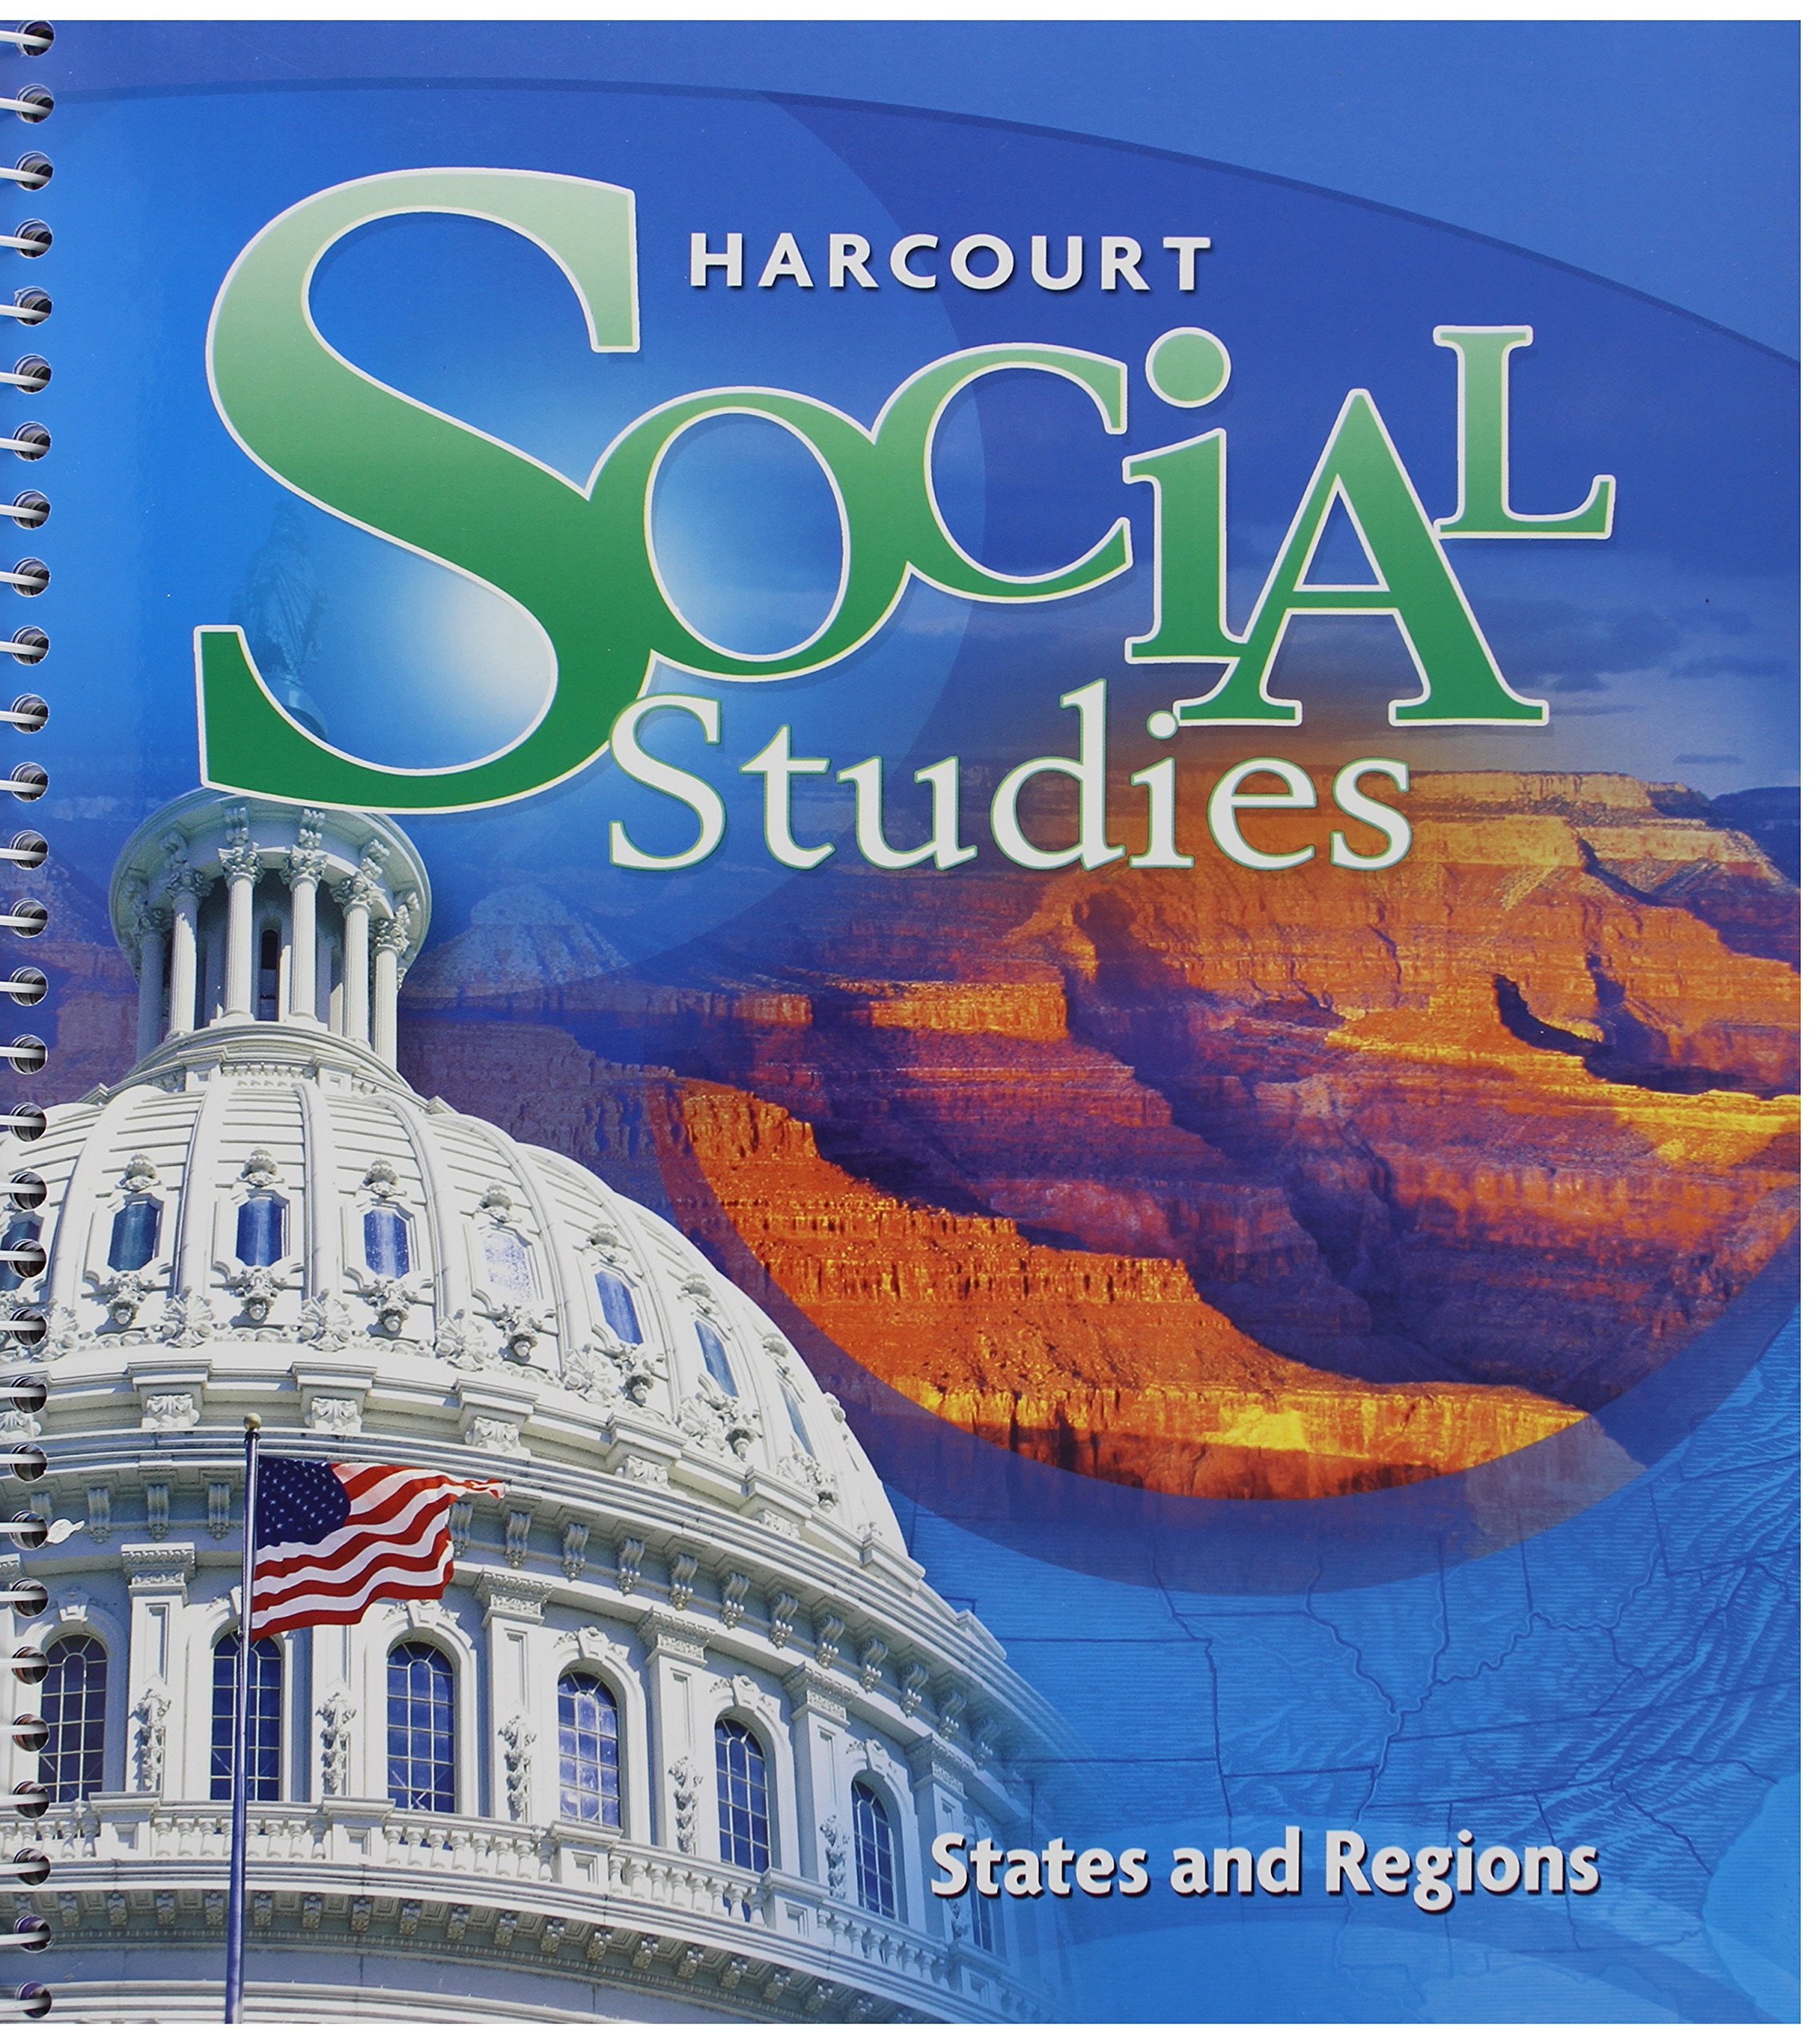 States and regions dr michael j bersom 9780153858994 amazon states and regions dr michael j bersom 9780153858994 amazon books fandeluxe Gallery